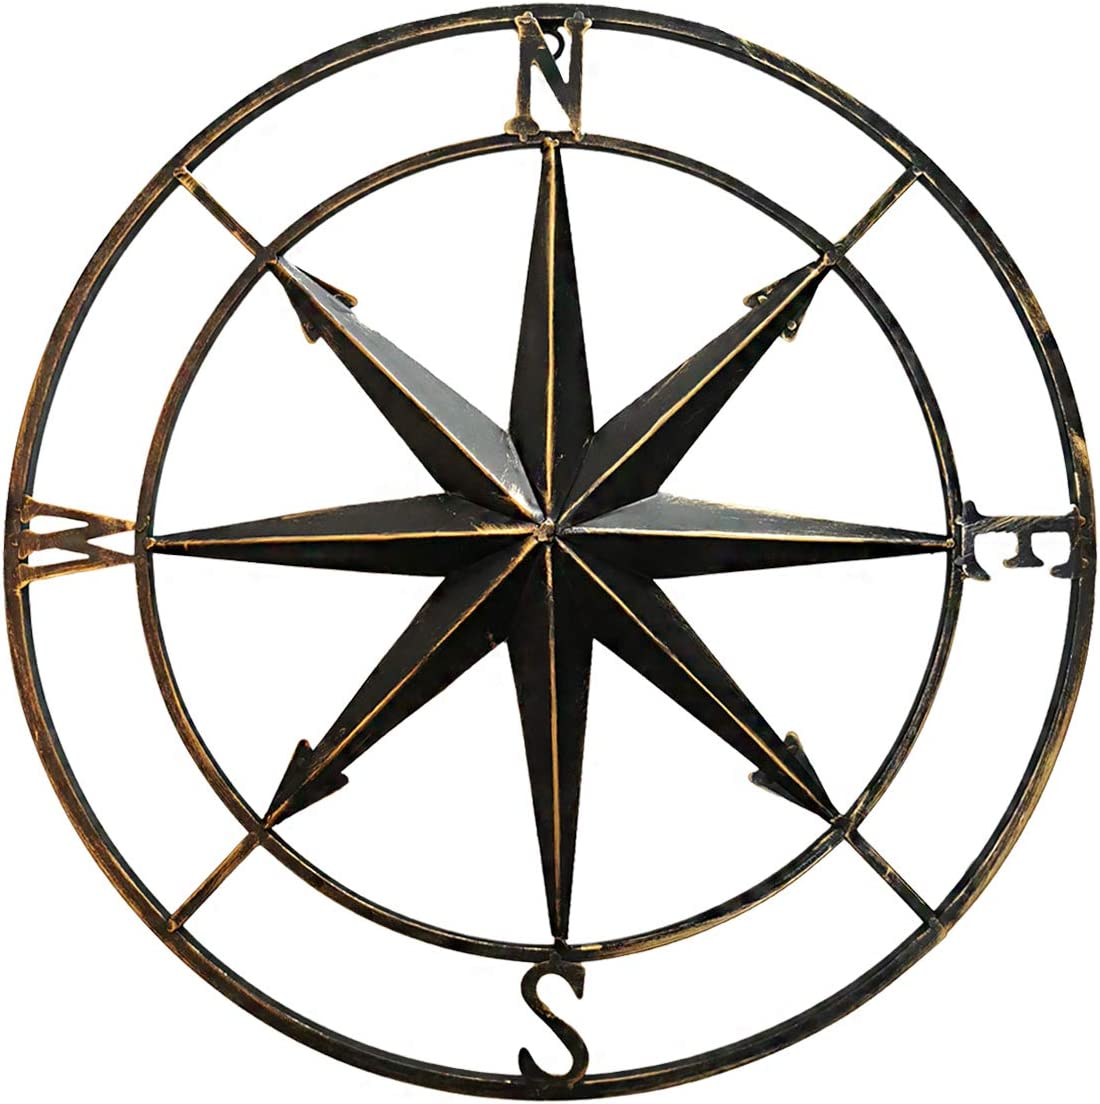 Decorative Round Metal Compass Wall Décor,Home Art for Outdoor/Indoor/Garege (Gold-Black)